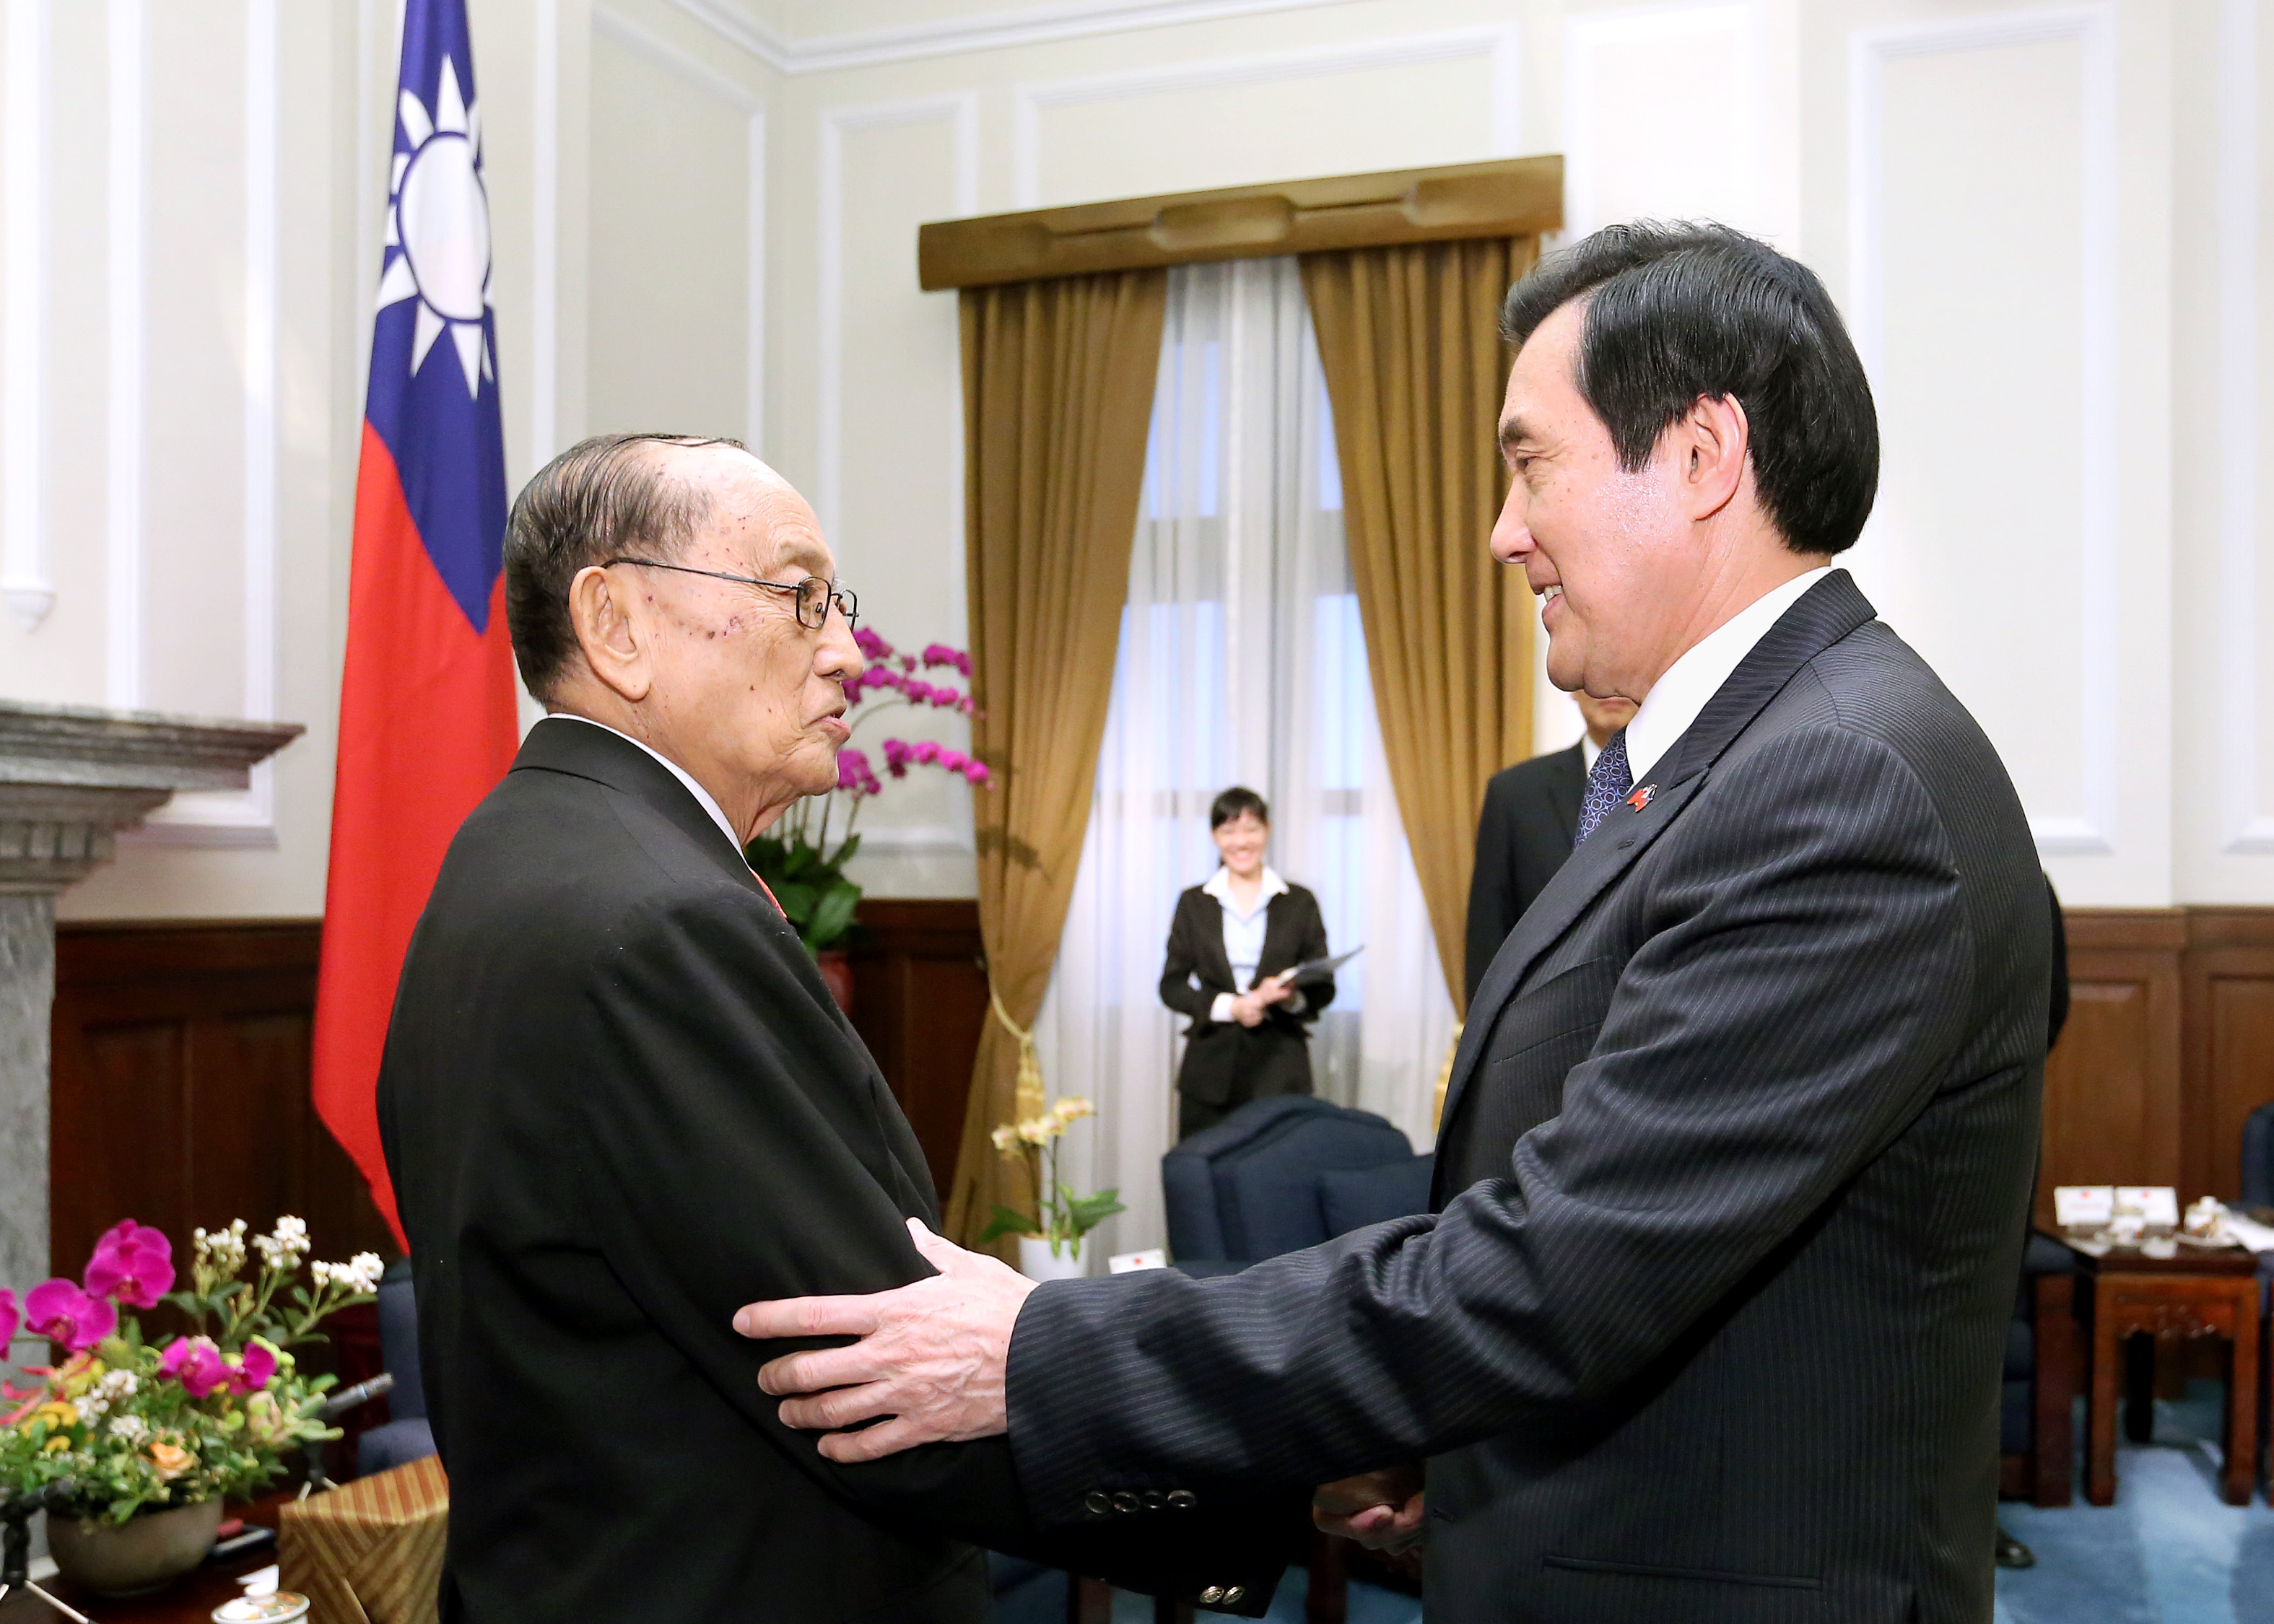 FORMER PRESIDENTS: Philippines' Fidel V. Ramos (left) and China's Ma Ying-jeou. (File photo by 總統府/Flickr)